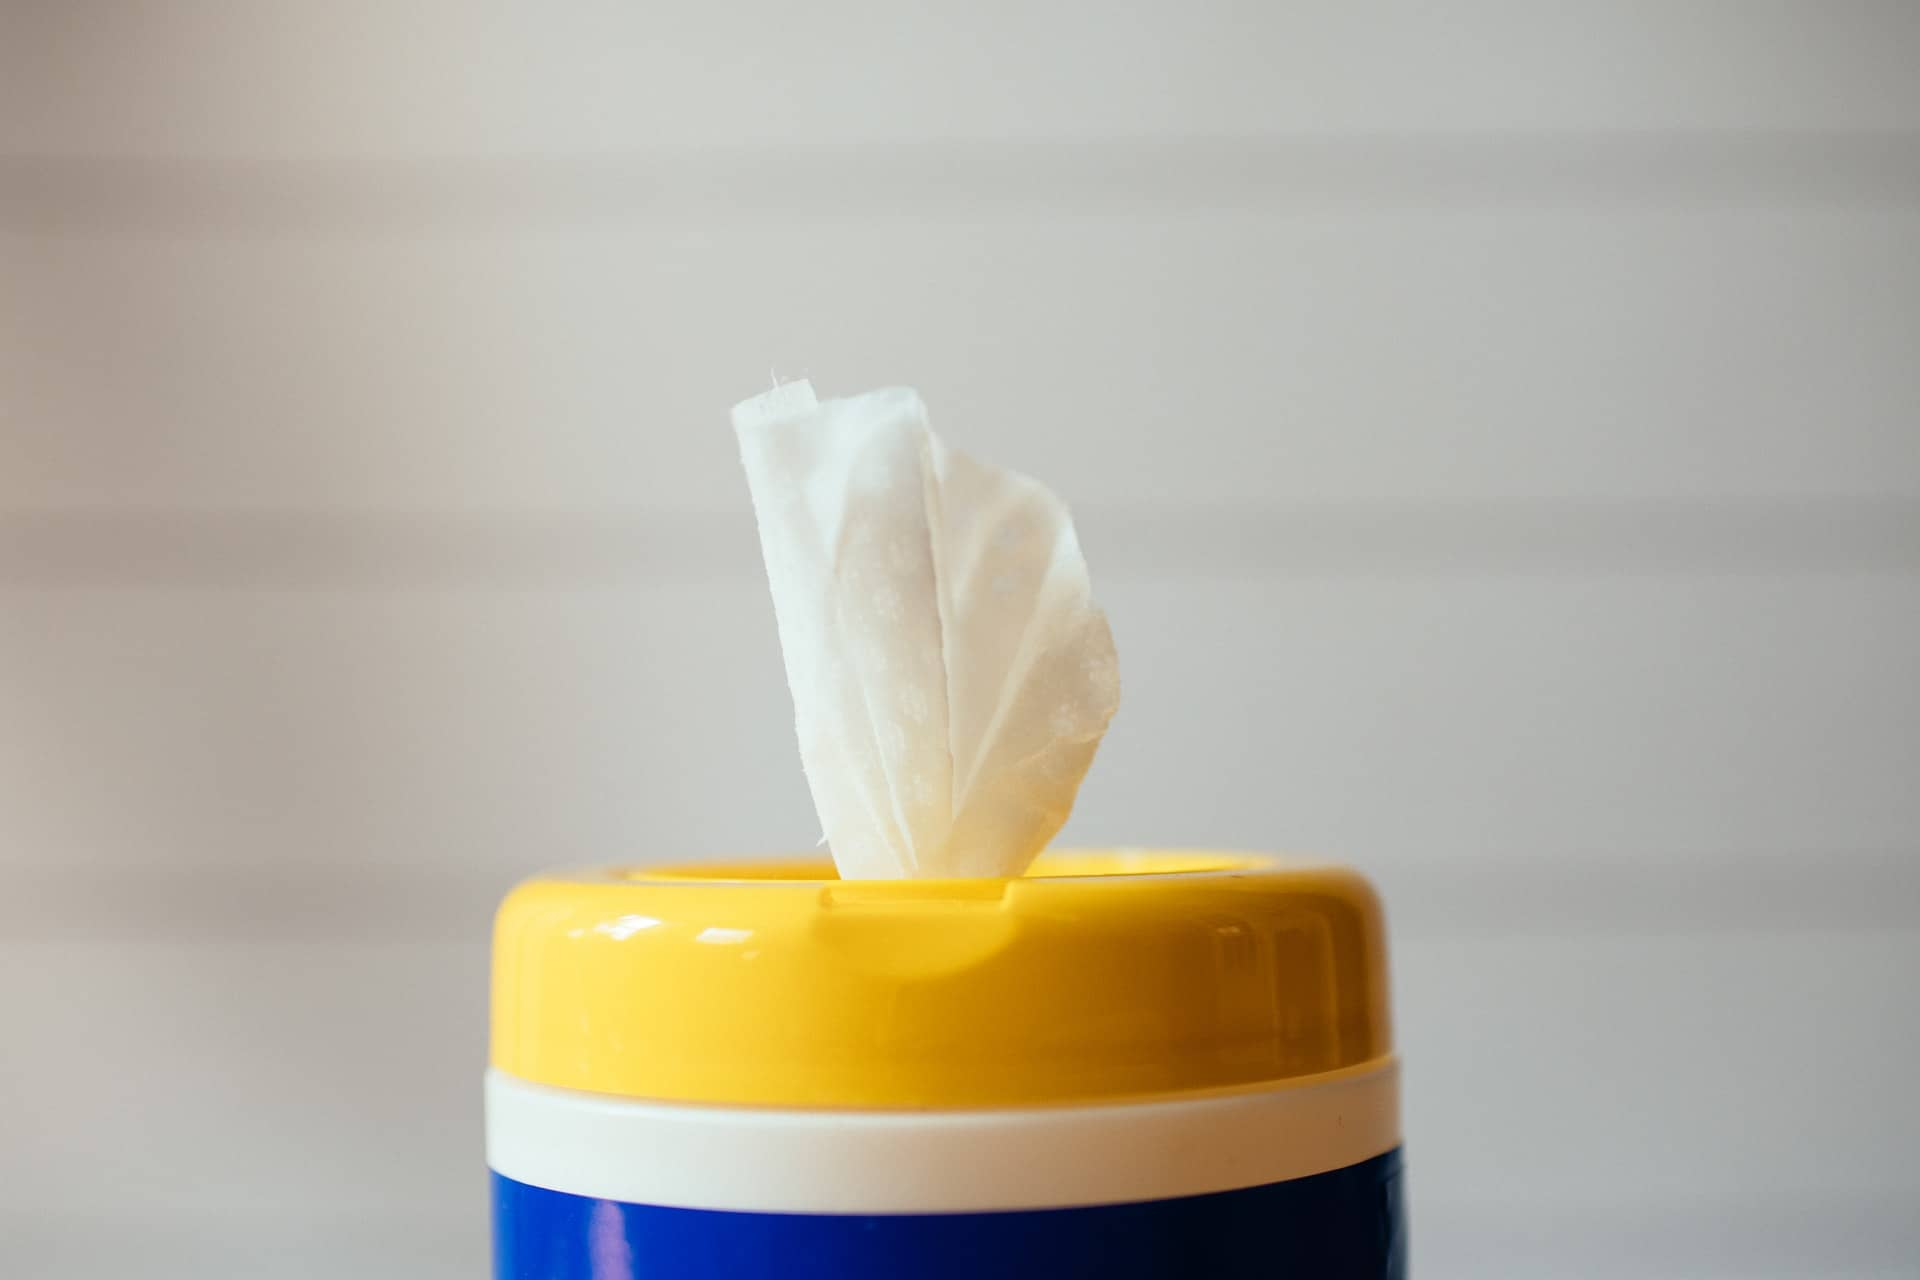 Have a safe trip antibacterial wipes